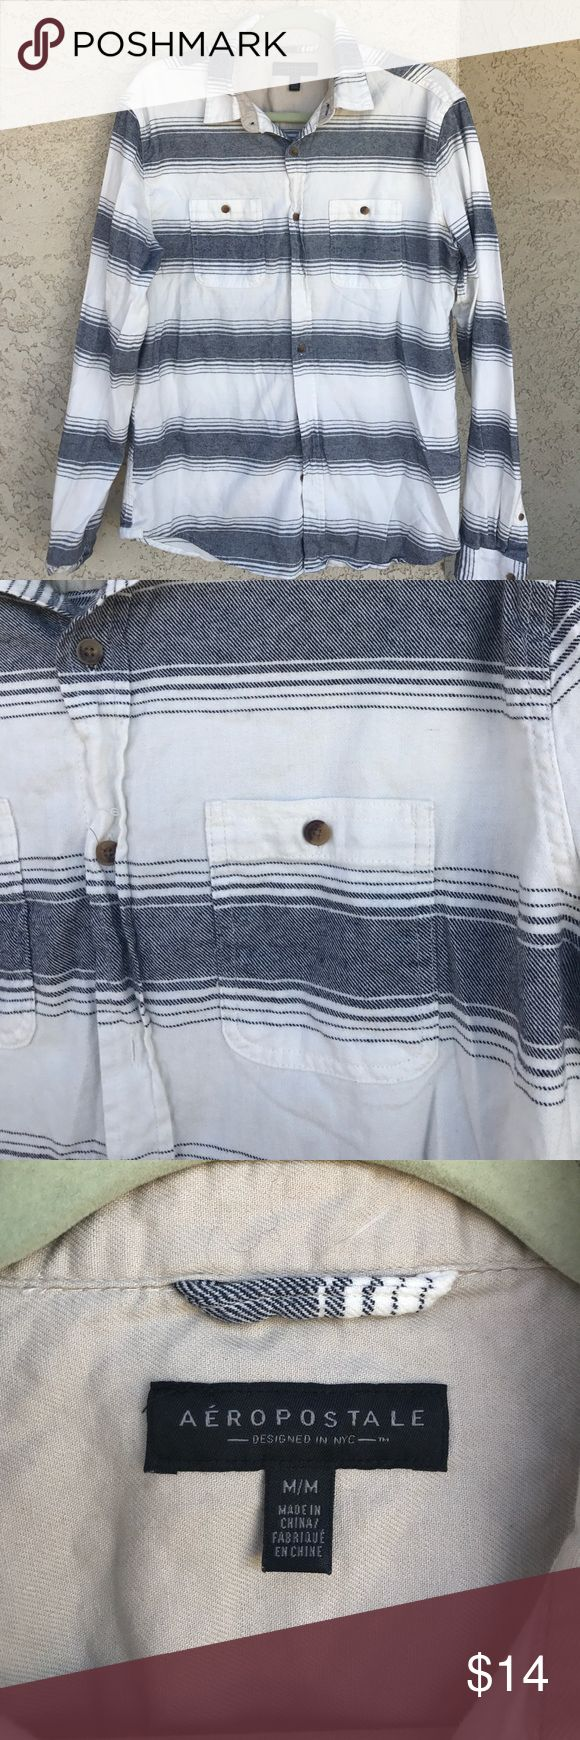 "Aeropostale Men's Casual Button Down Shirt Long sleeve button down shirt with dark blue stripes. Great condition, no rips or stains.                                     Length: 28"" Aeropostale Shirts Casual Button Down Shirts"